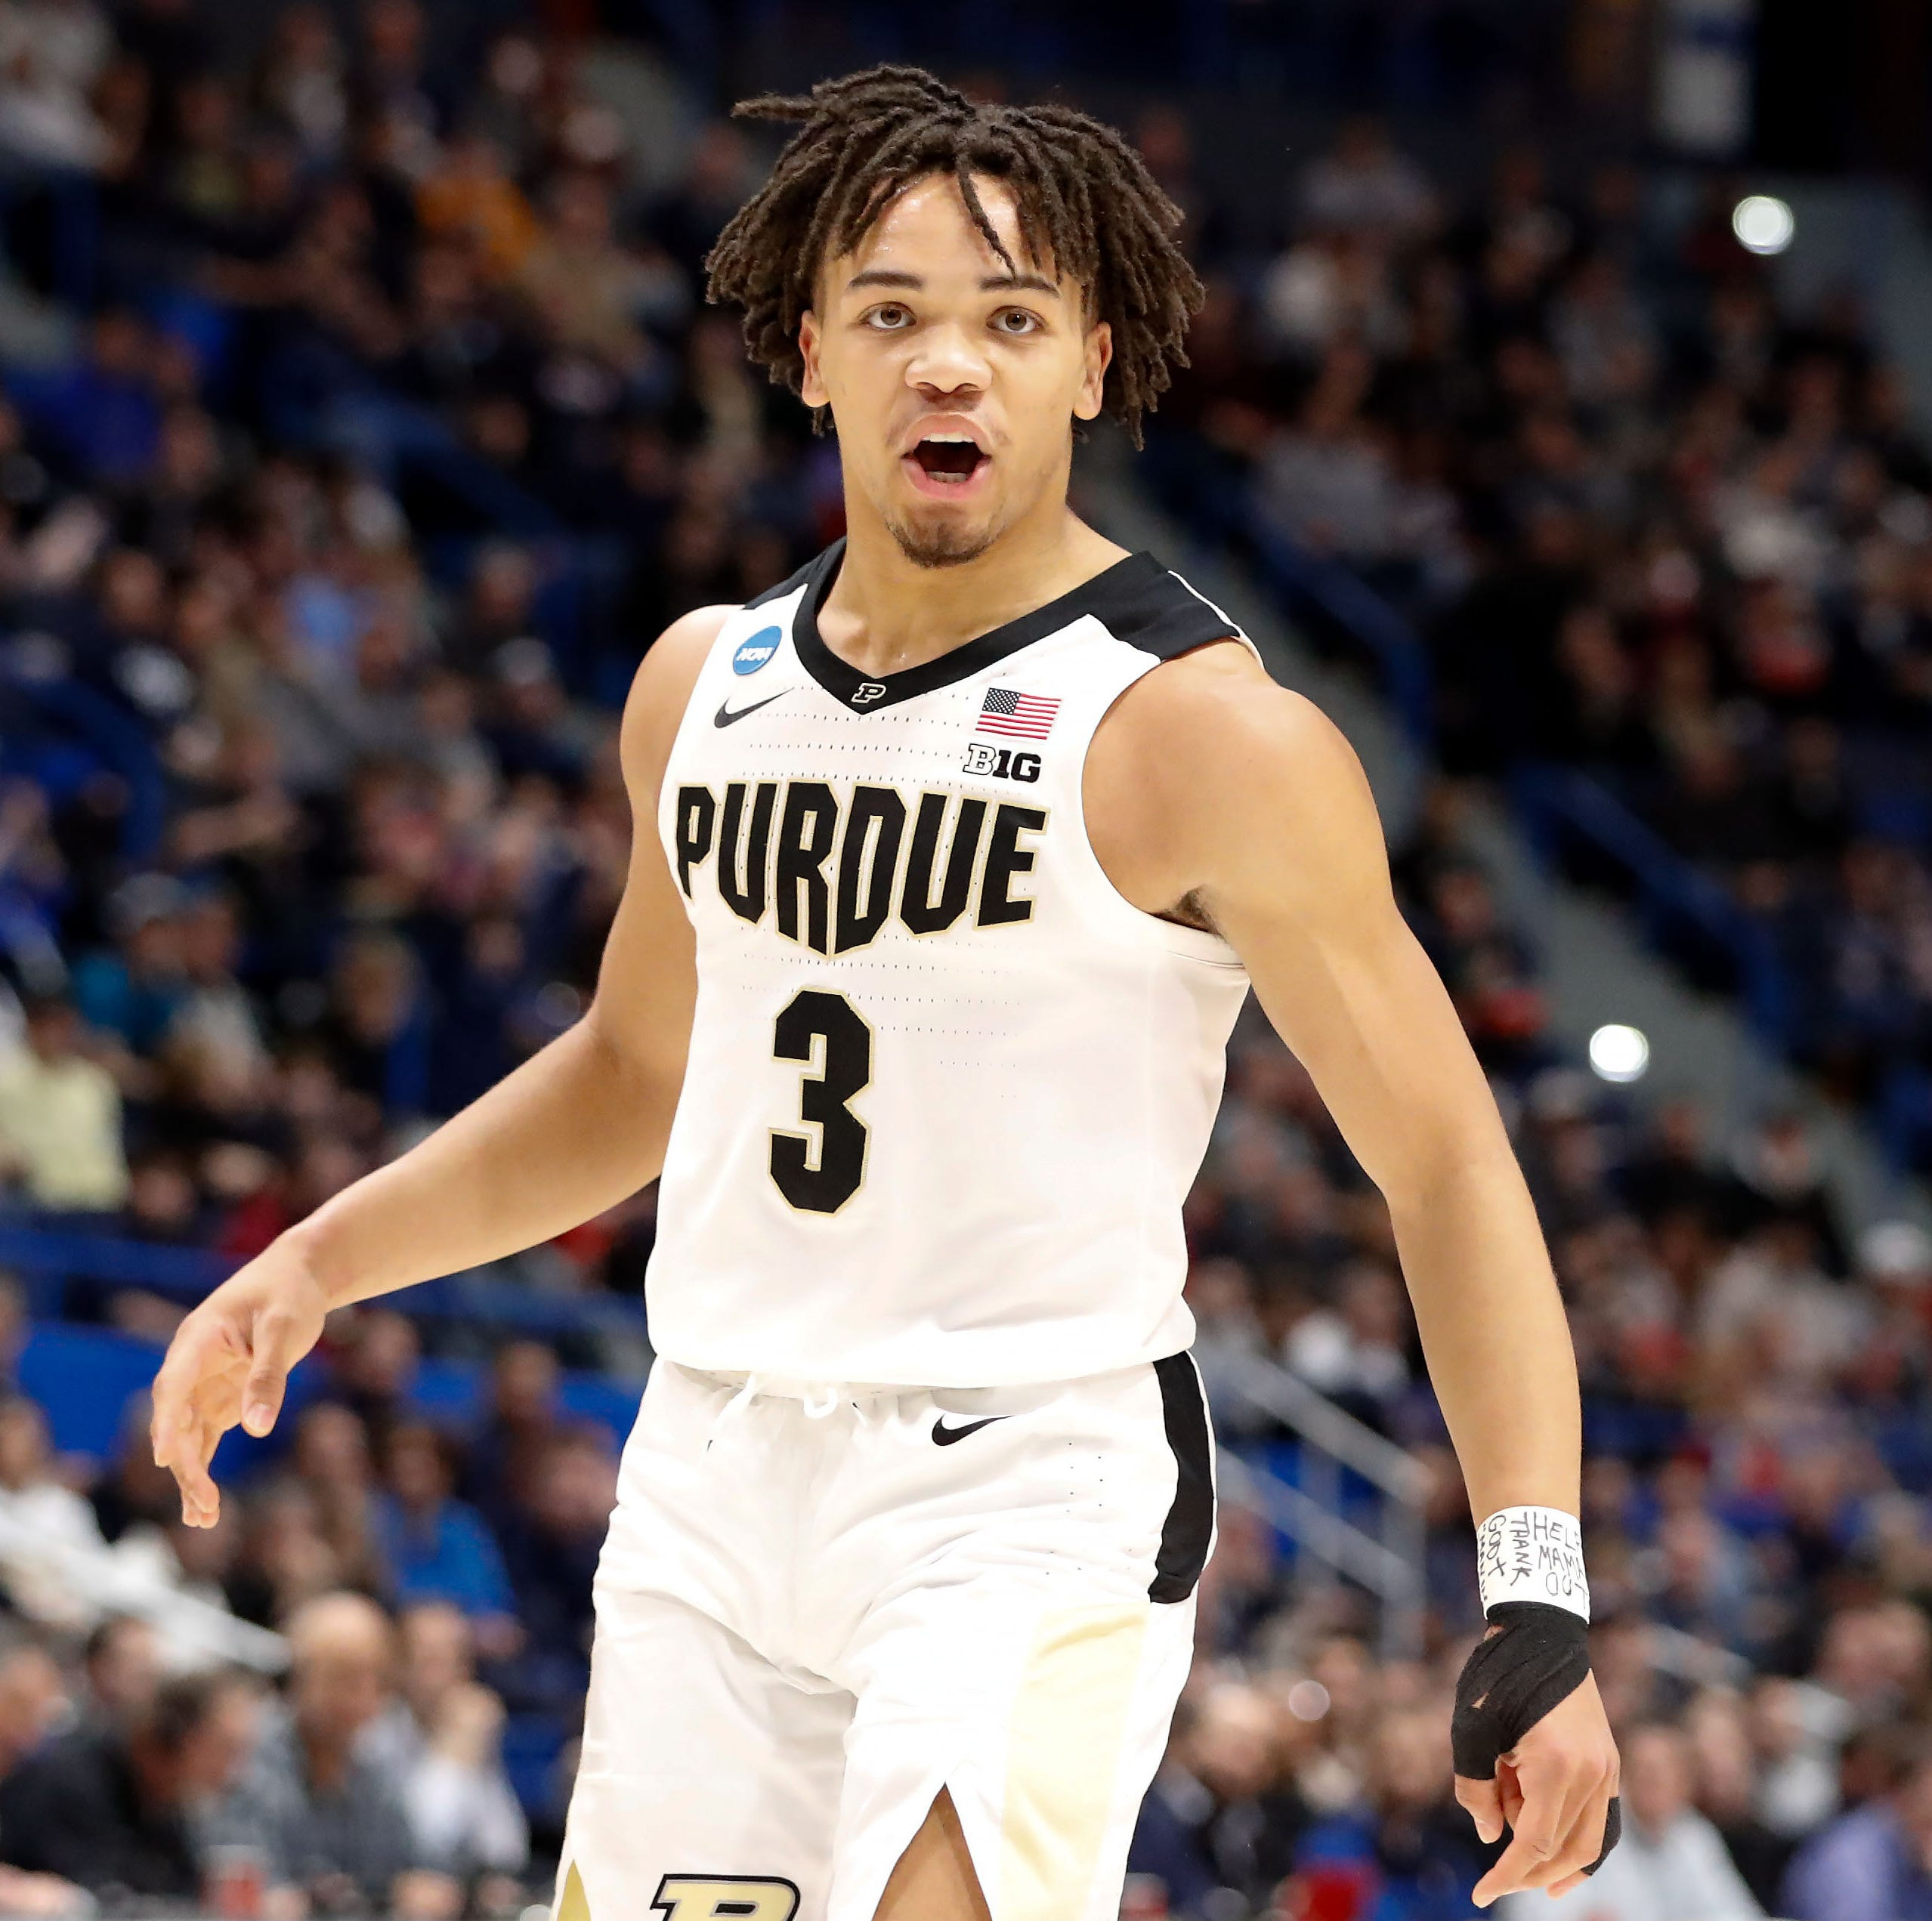 Purdue basketball's Carsen Edwards invited to NBA Draft Combine